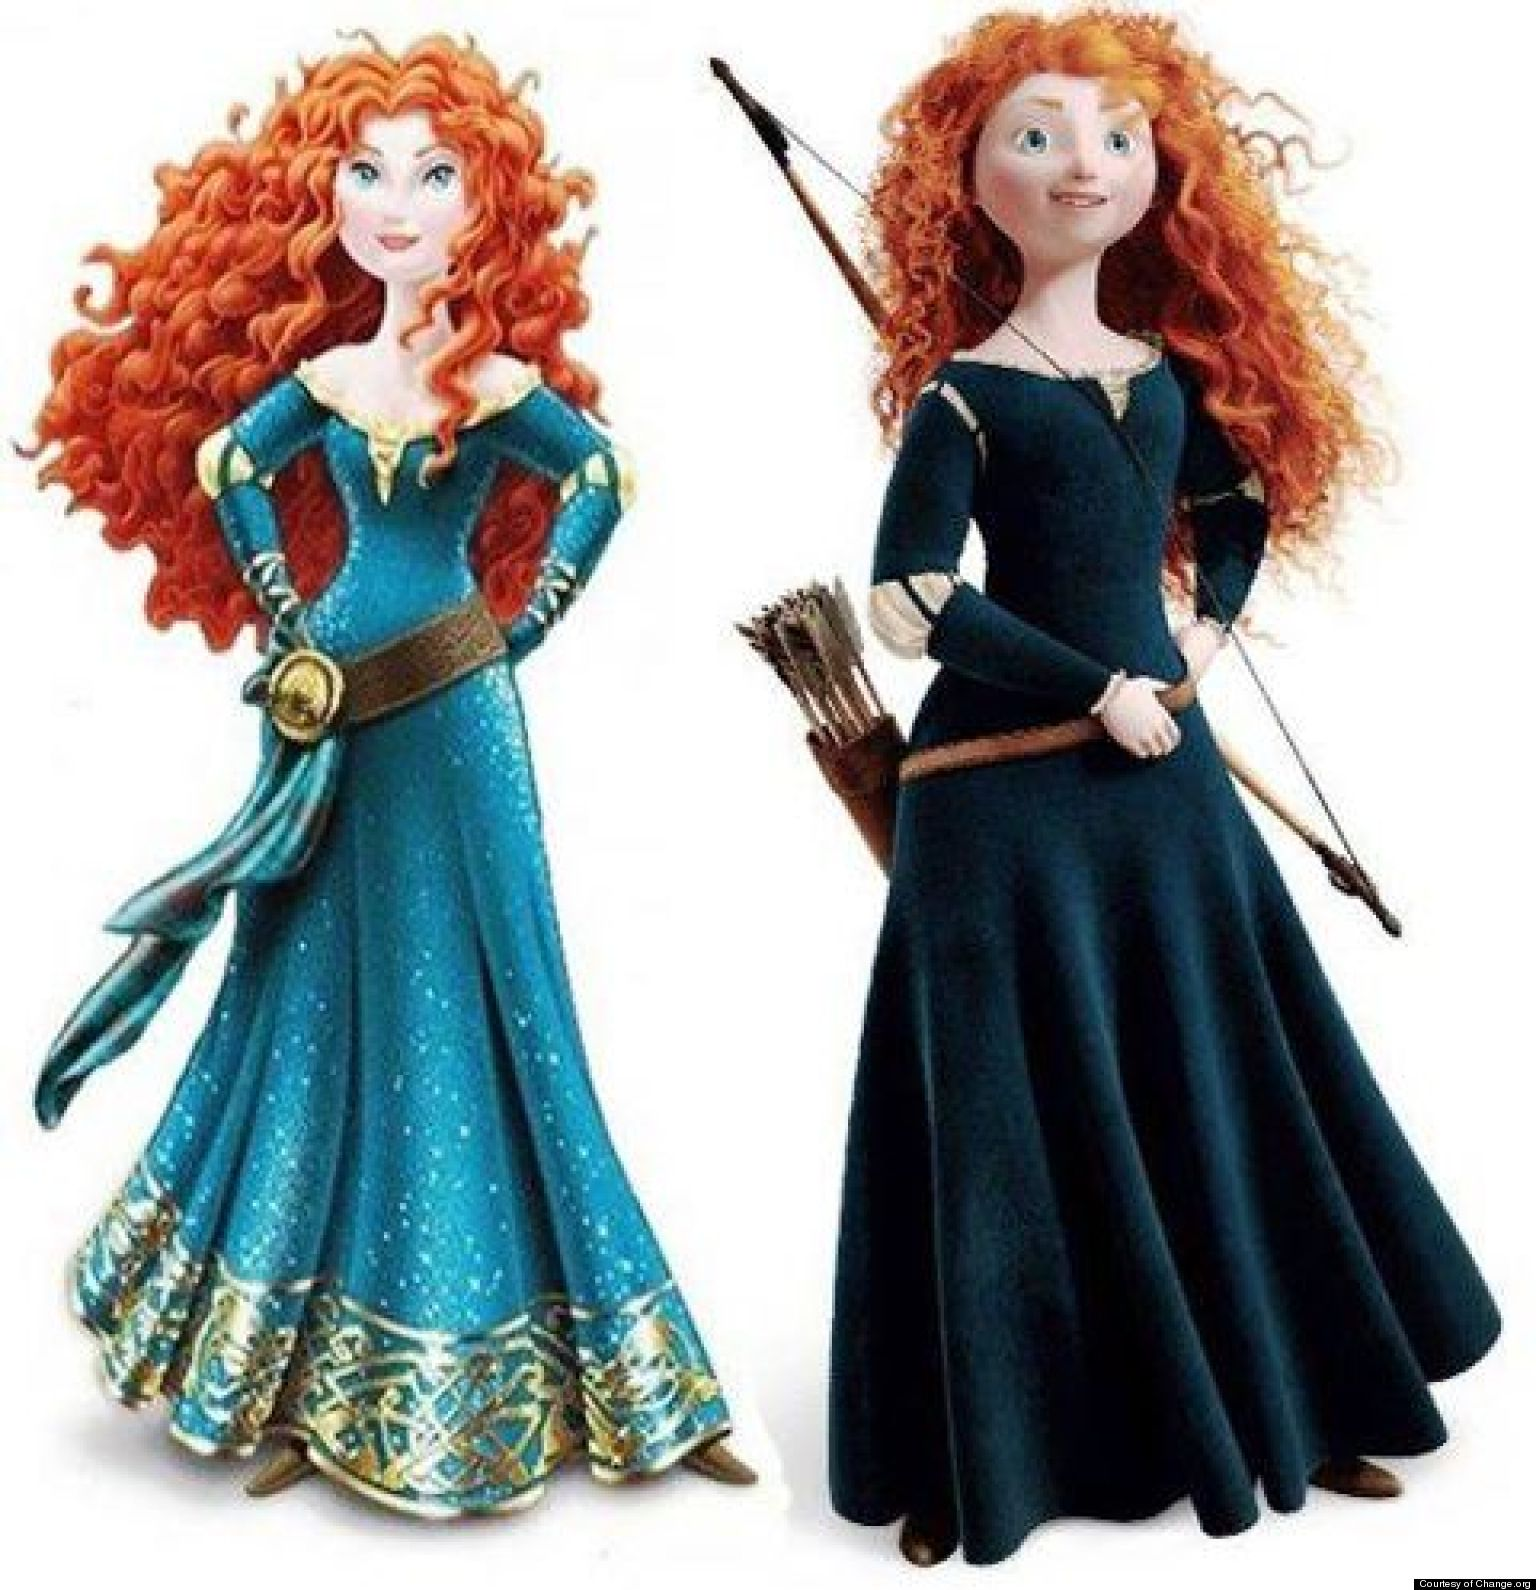 Merida From 'Brave' Gets An Unnecessary Makeover, Sparks Change.org